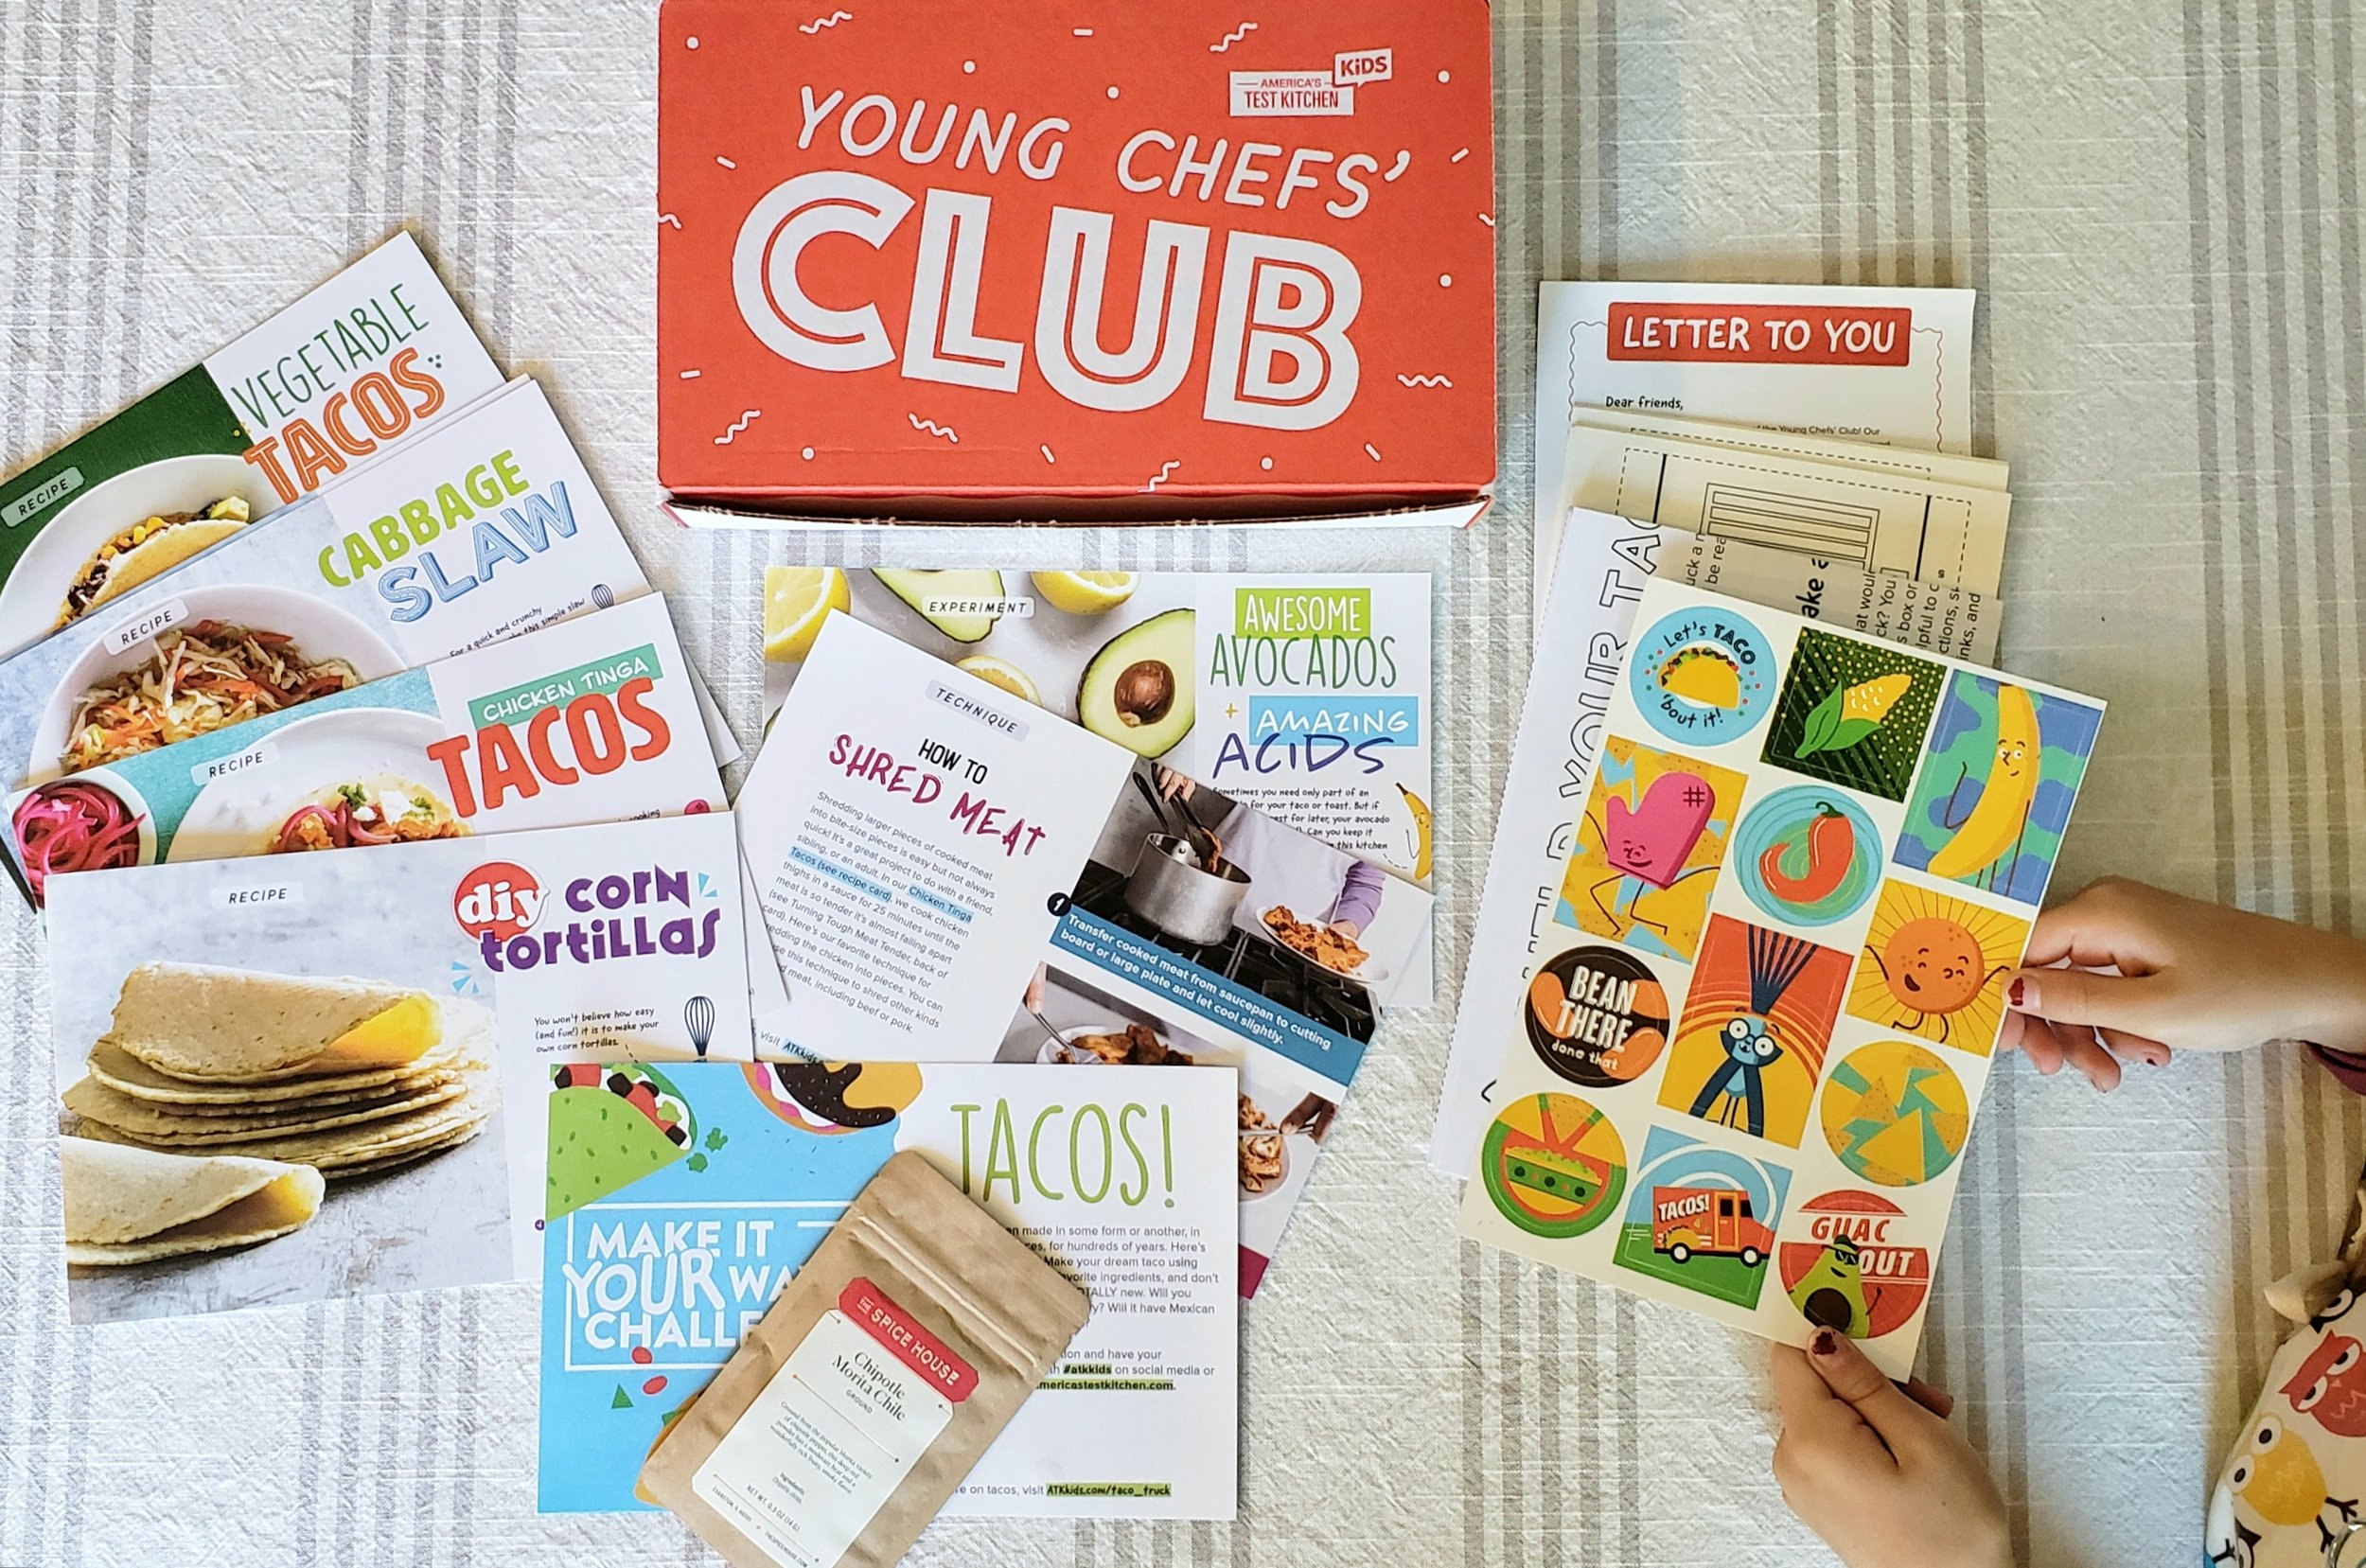 Adorable taco-themed cooking kit from America's Test Kitchen Kids' Young Chefs' Club